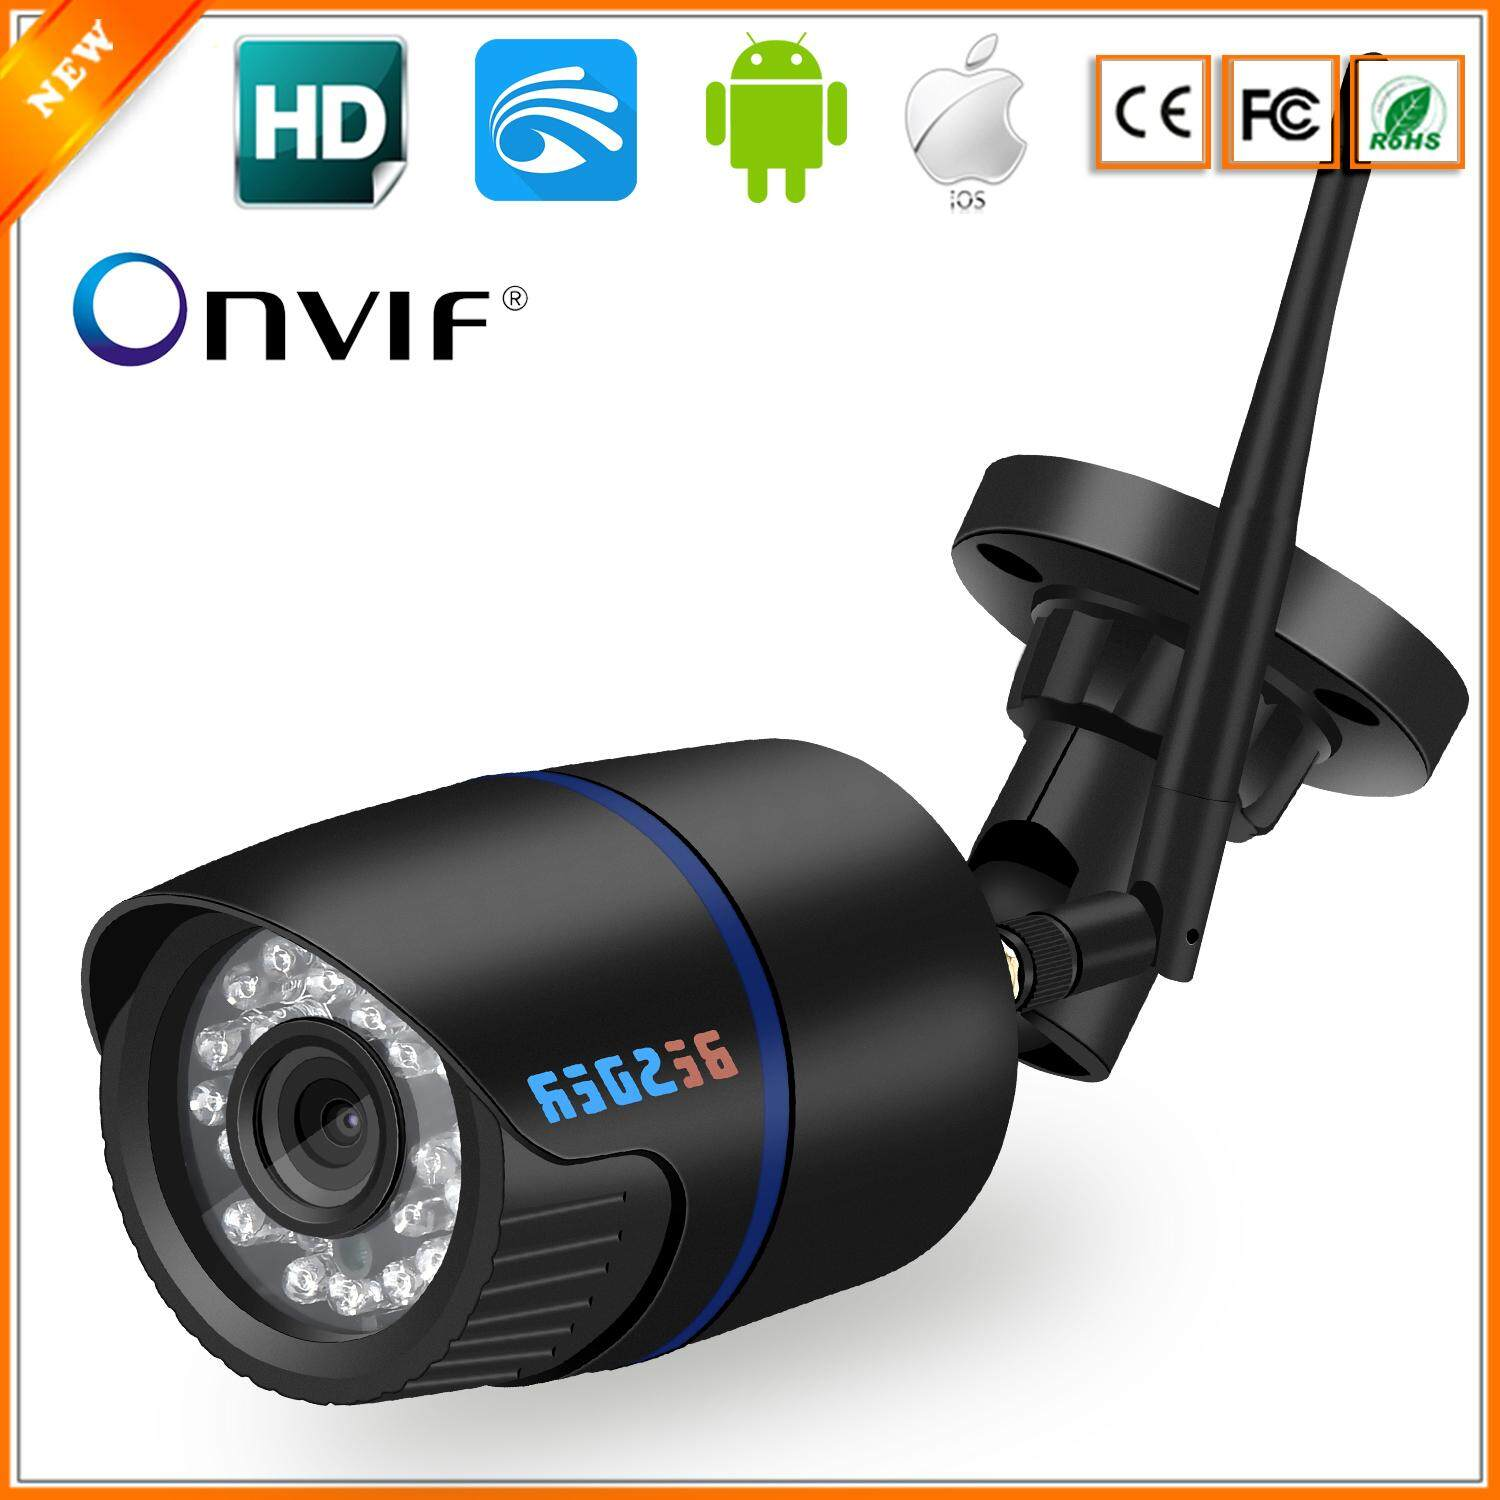 Besder Yoosee Ip Camera Wifi 720p 1.0 Megapixel Surveillance Cameras Outdoor Bullet Ir Night Vision Camera Support Onvif P2p Rtsp With Sd Card Slot By Besder Official Store.